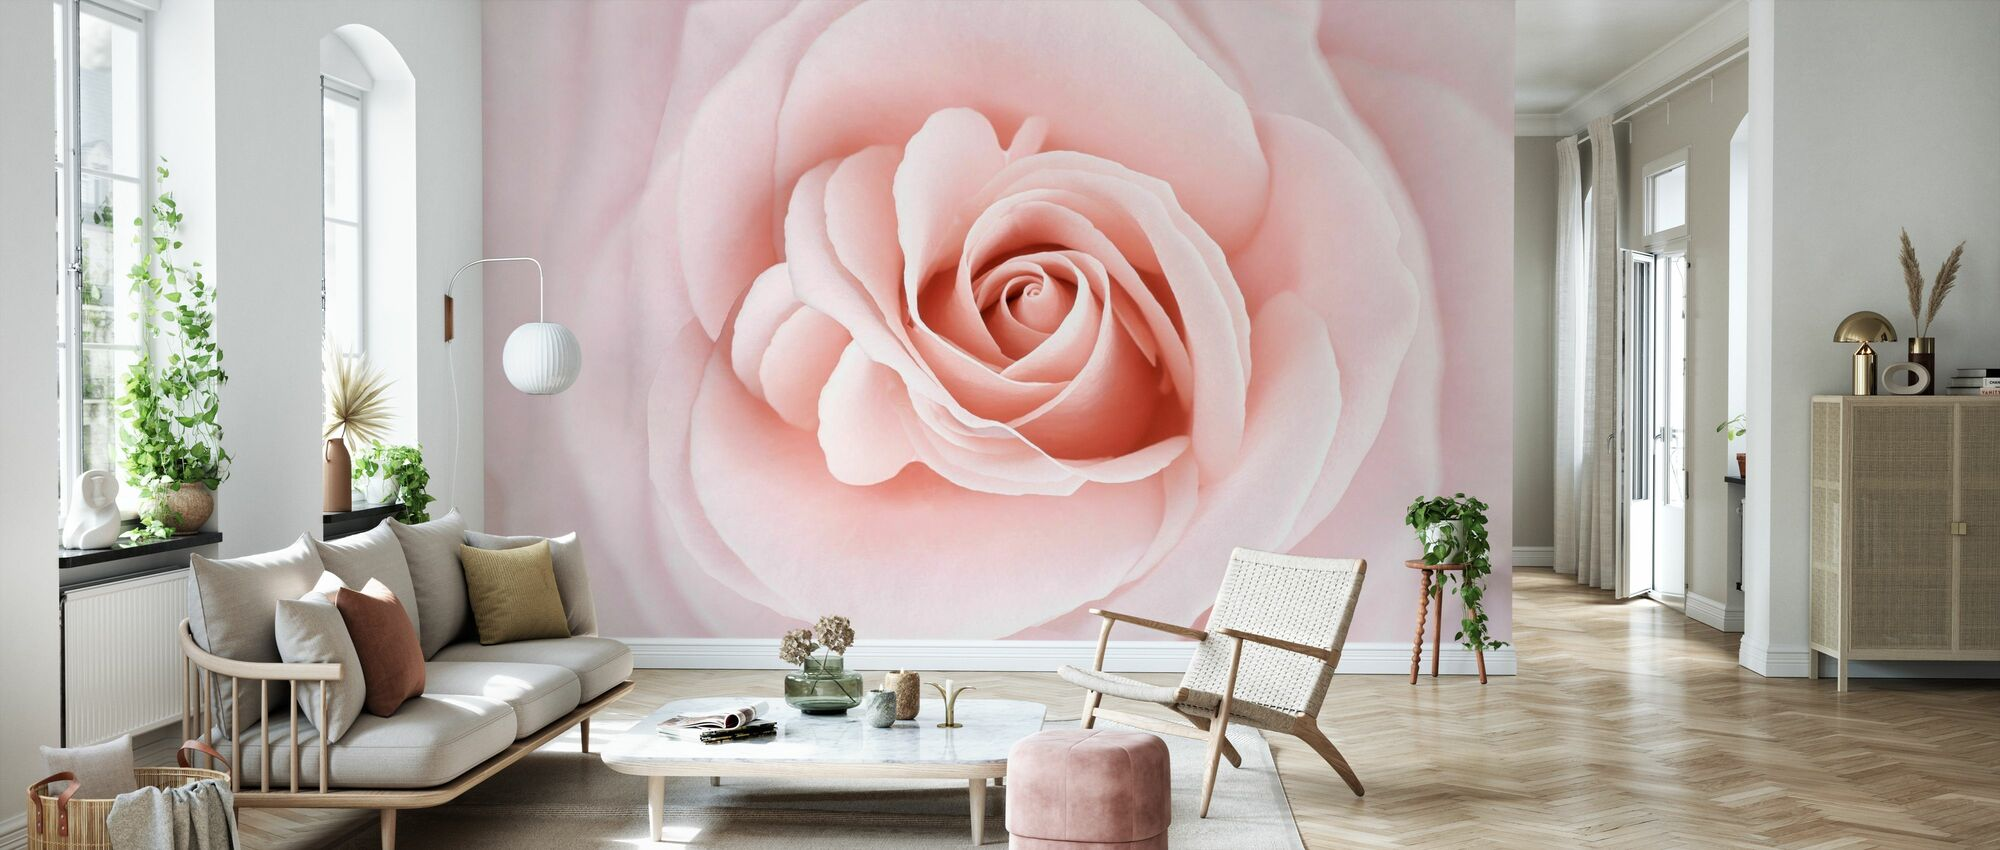 Soft Rose in Peach Pink Shades - Wallpaper - Living Room